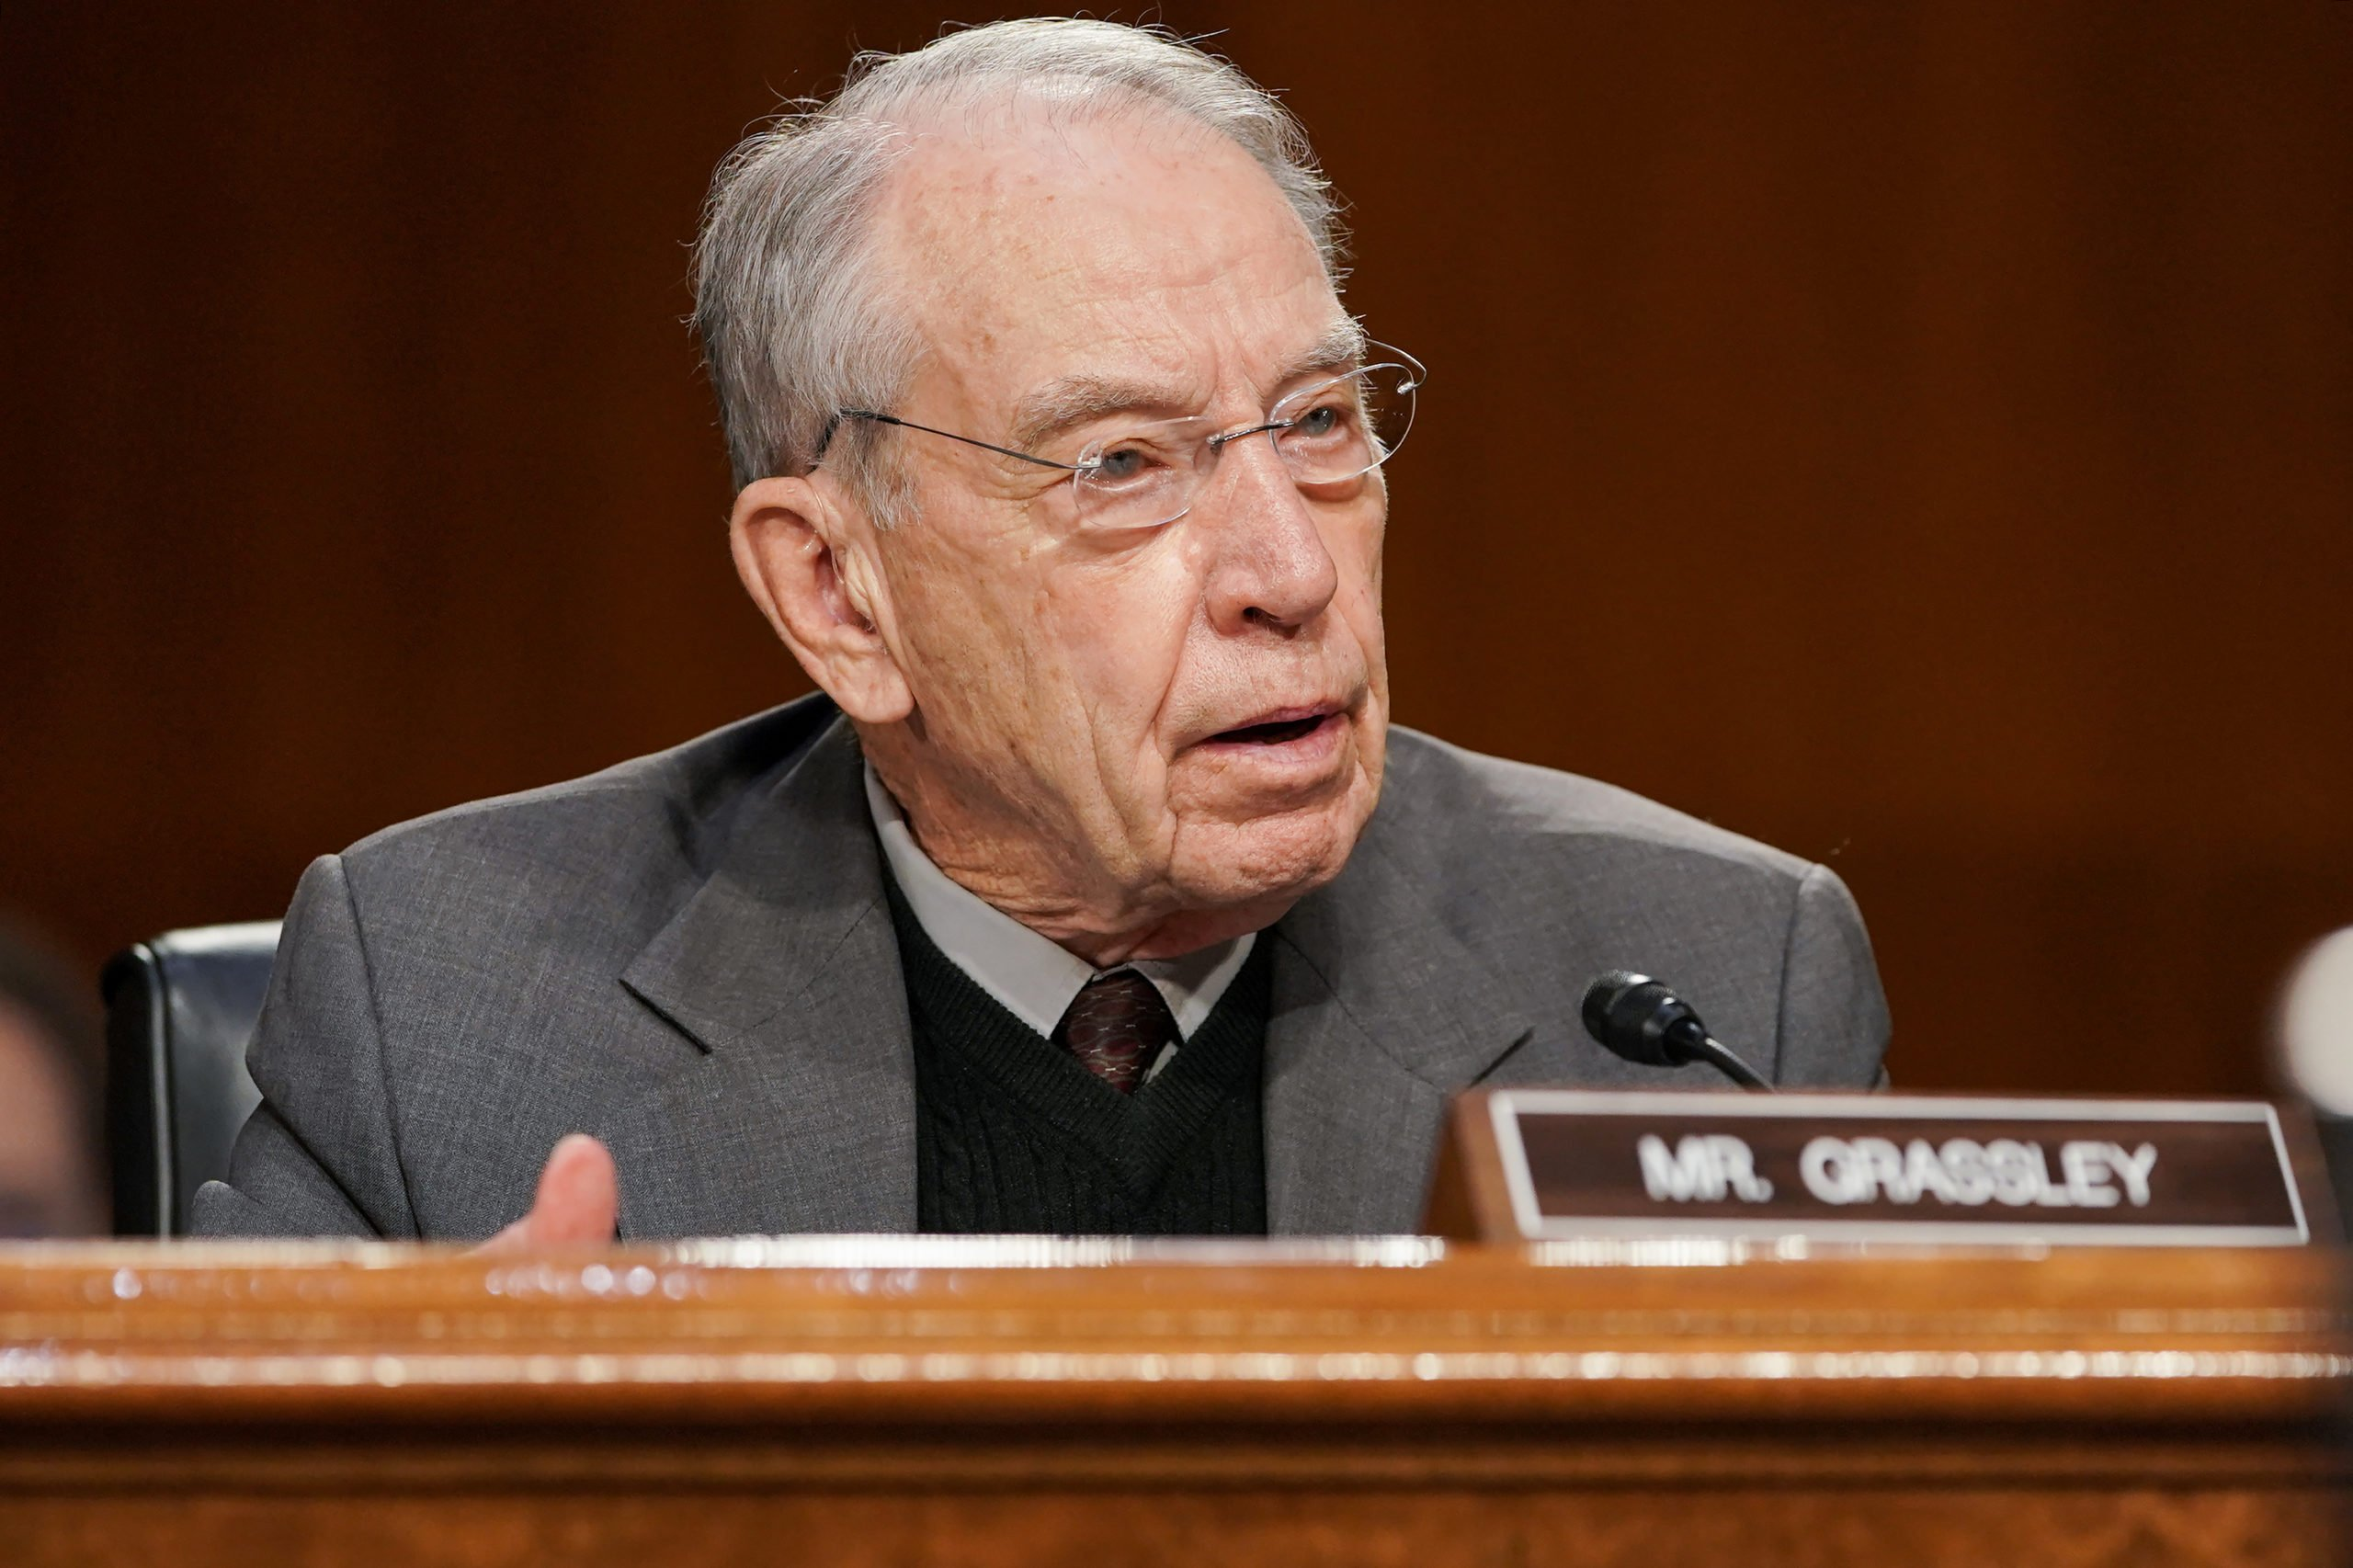 Sen. Chuck Grassley questions Xavier Becerra, President Joe Biden's nominee for Secretary of Health and Human Services, during his confirmation hearing before the Senate Finance Committee on Capitol Hill on February 24, 2021. (Greg Nash-Pool/Getty Images)